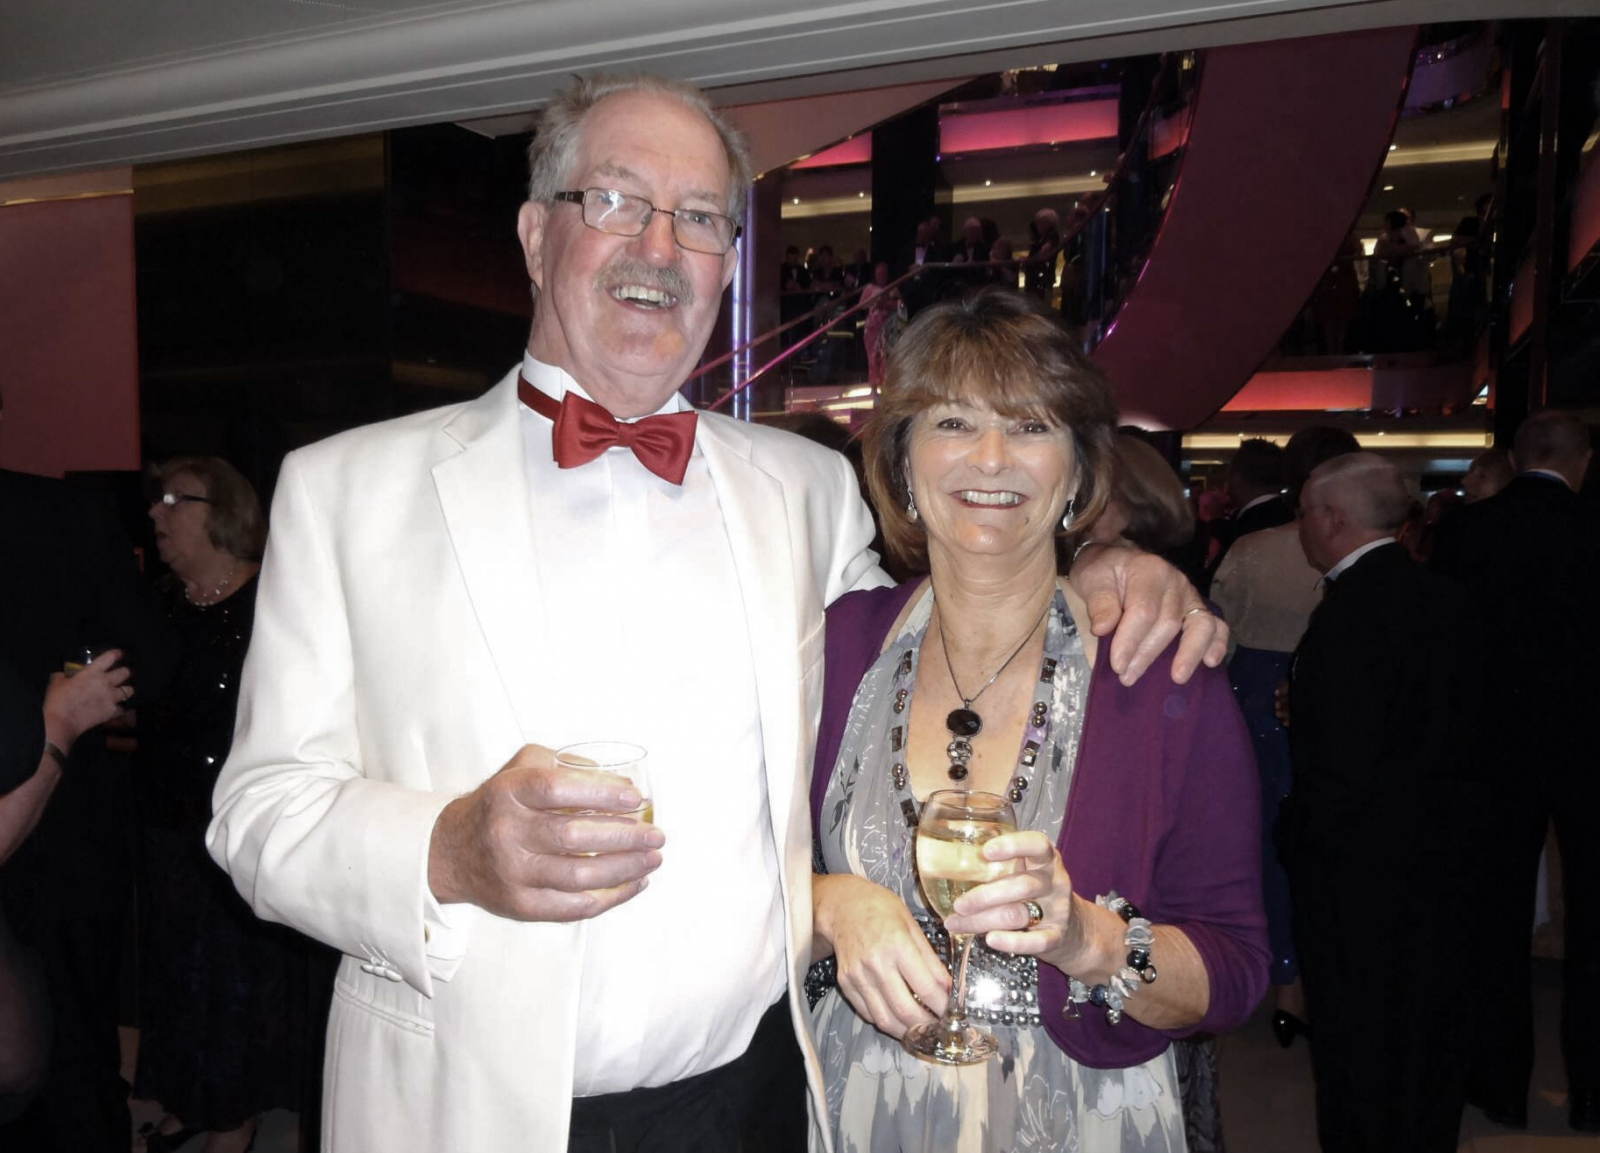 Morgan Wiles (left) and his wife Pat. Morgan managed to beat stage four malignant melanoma despite his age and the odds against him